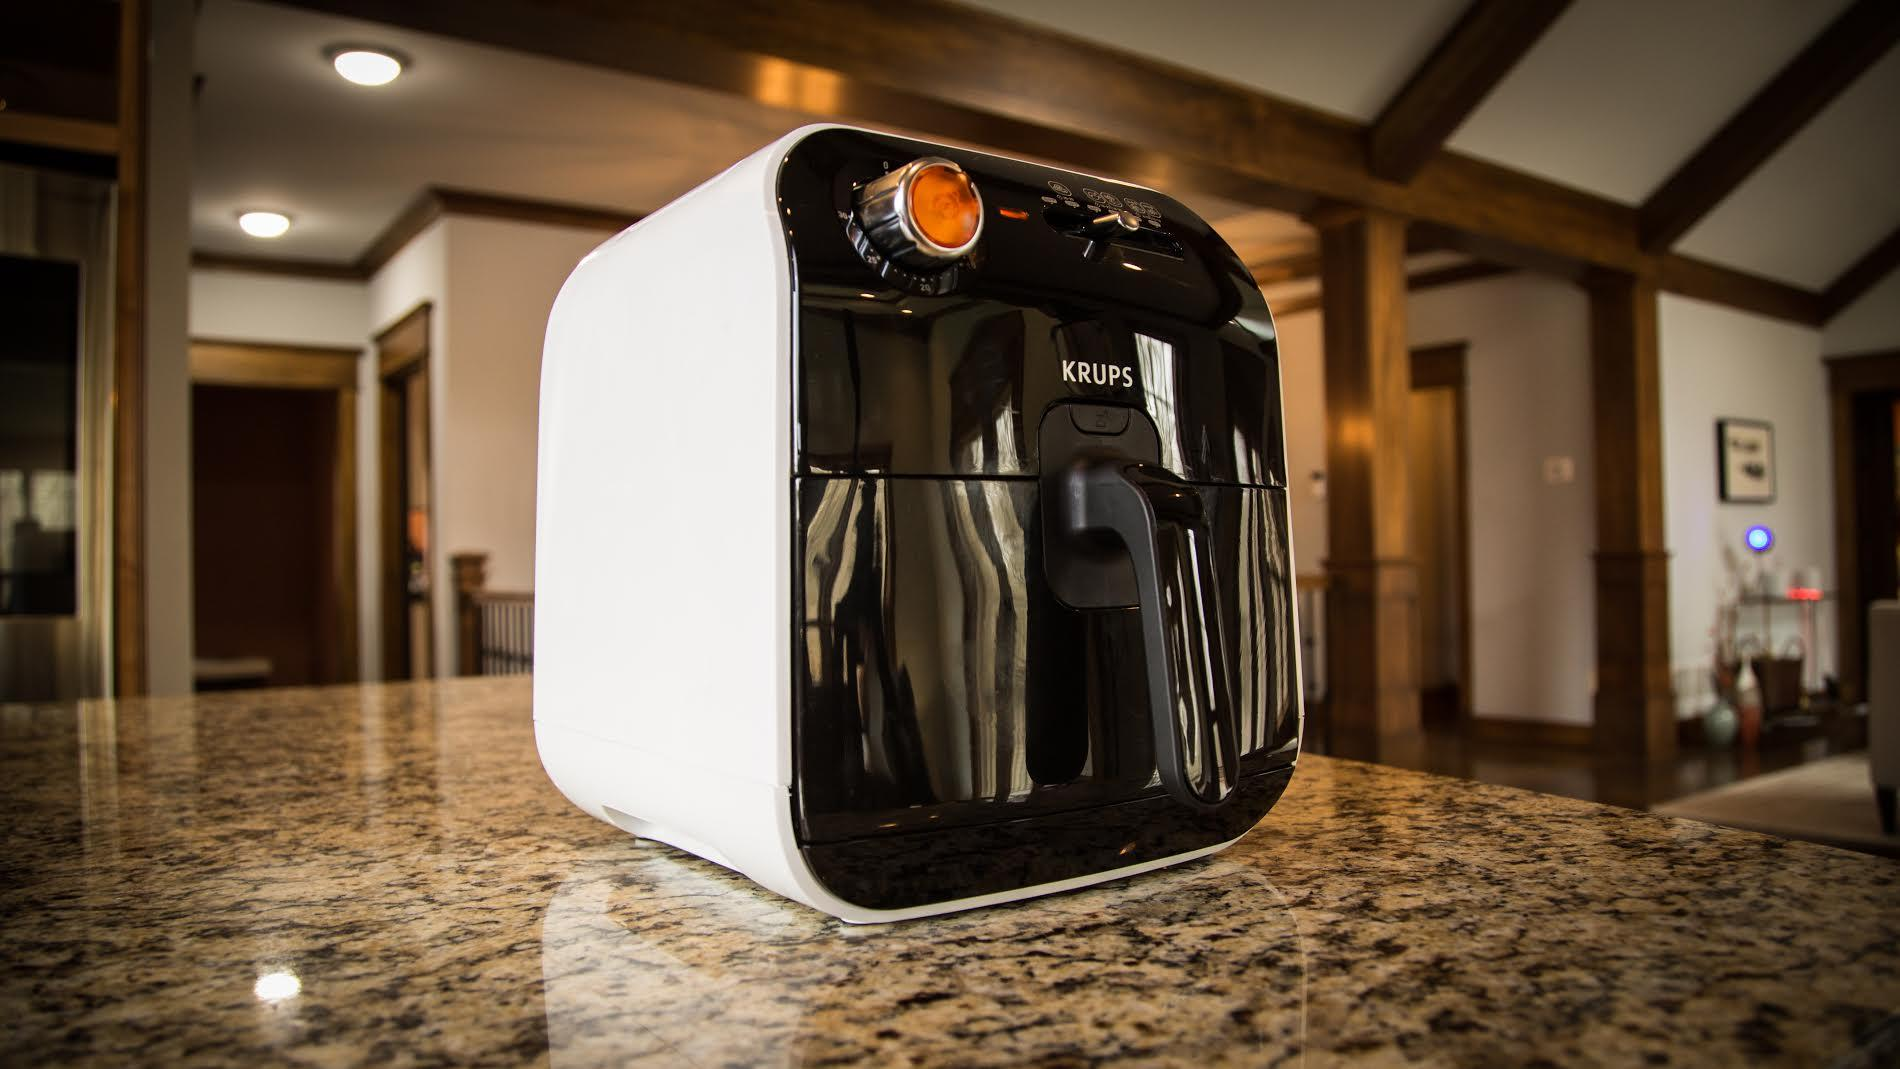 Krups Fry Delight Air Fryer